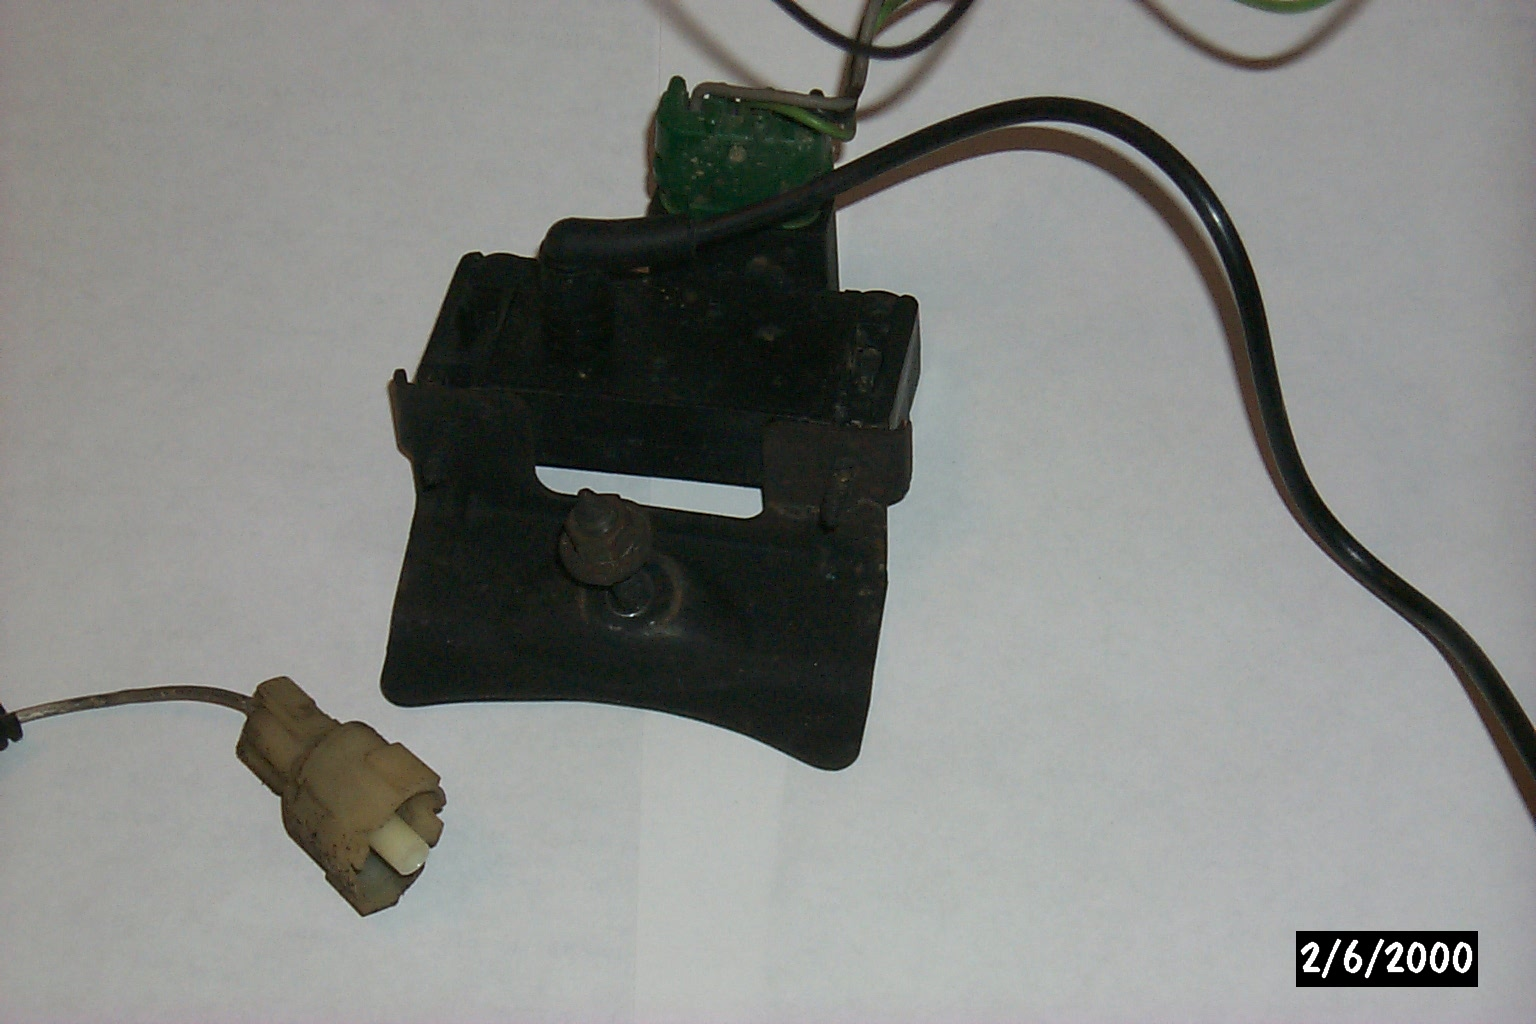 hight resolution of knock sensor plug connector and 91 map sensor w wires vac tube pulled from junk yard